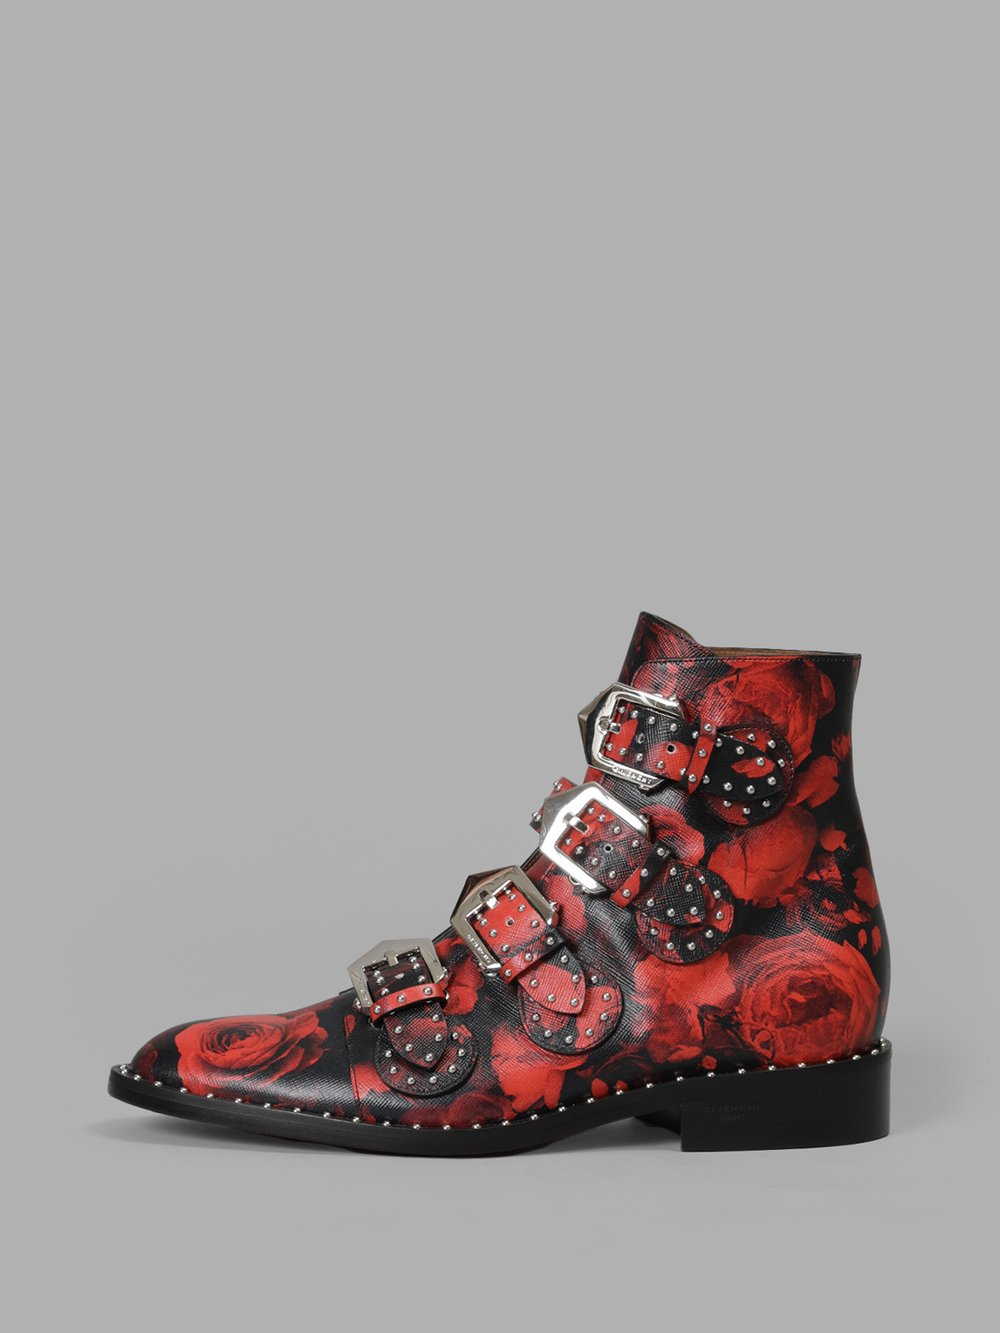 Studded Rose Ankle Booties in Red Roses Pattern